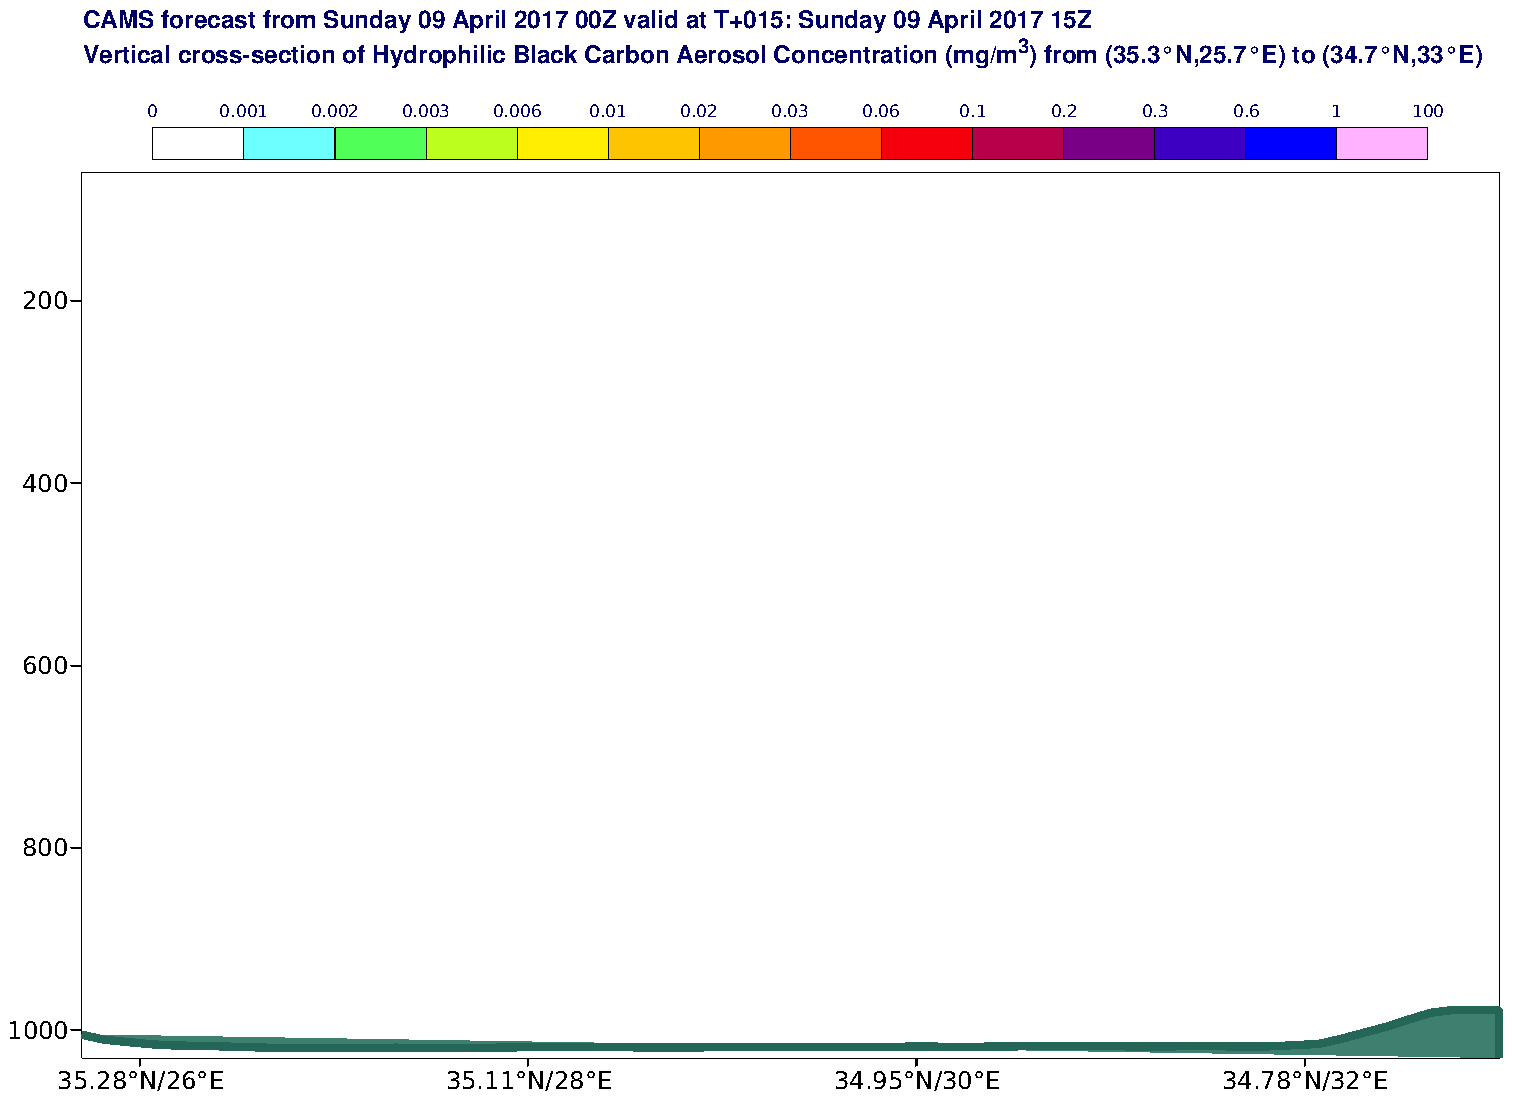 Vertical cross-section of Hydrophilic Black Carbon Aerosol Concentration (mg/m3) valid at T15 - 2017-04-09 15:00